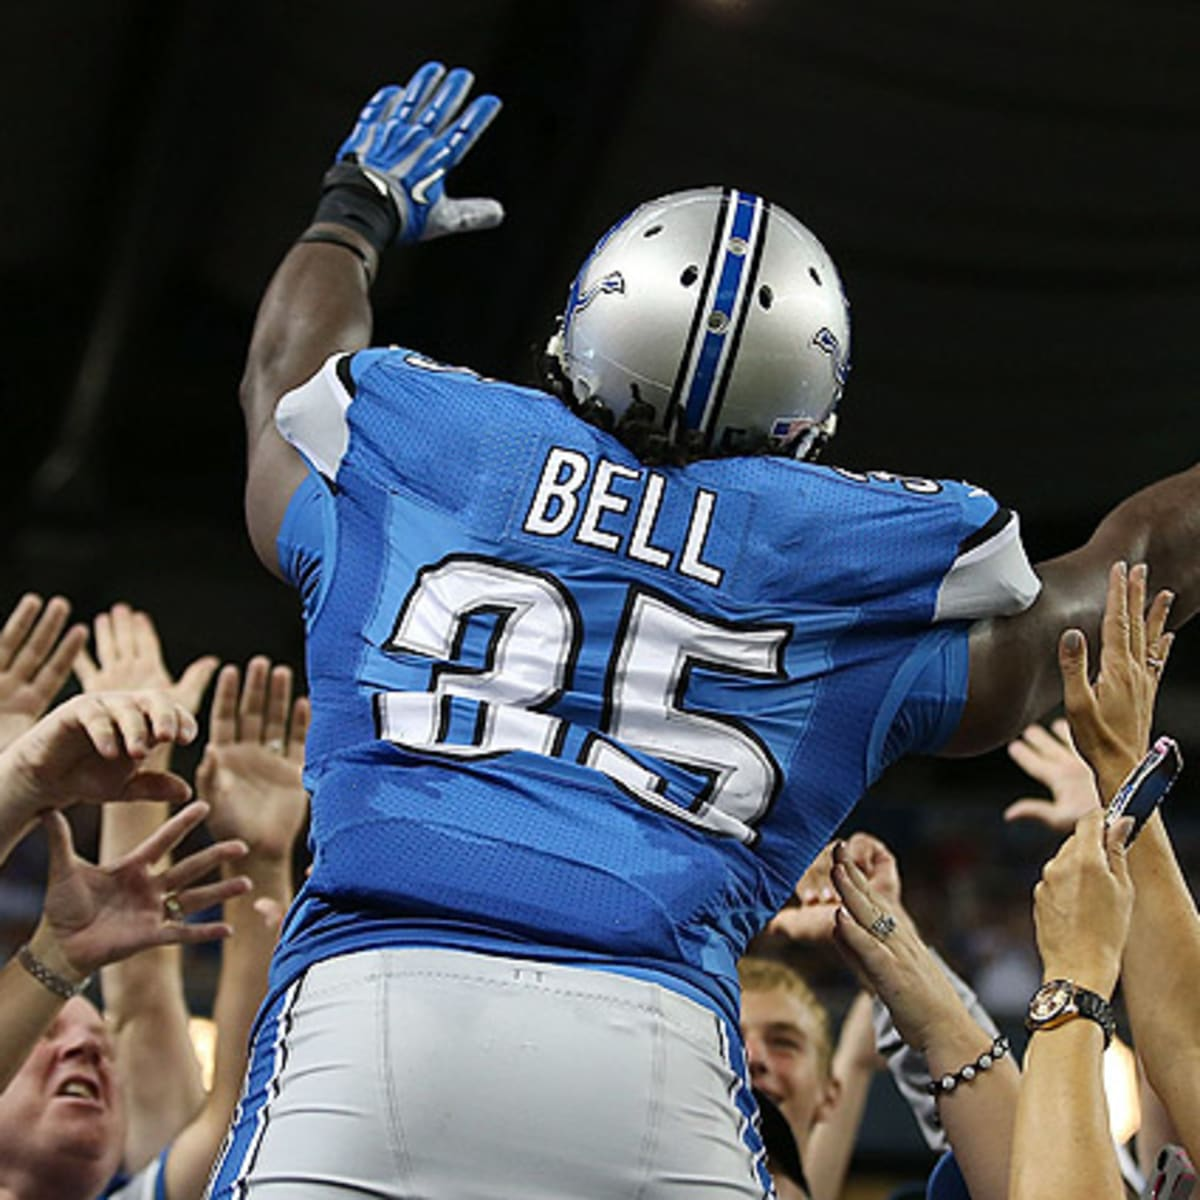 Joique Bell signs extension with Lions - Sports Illustrated